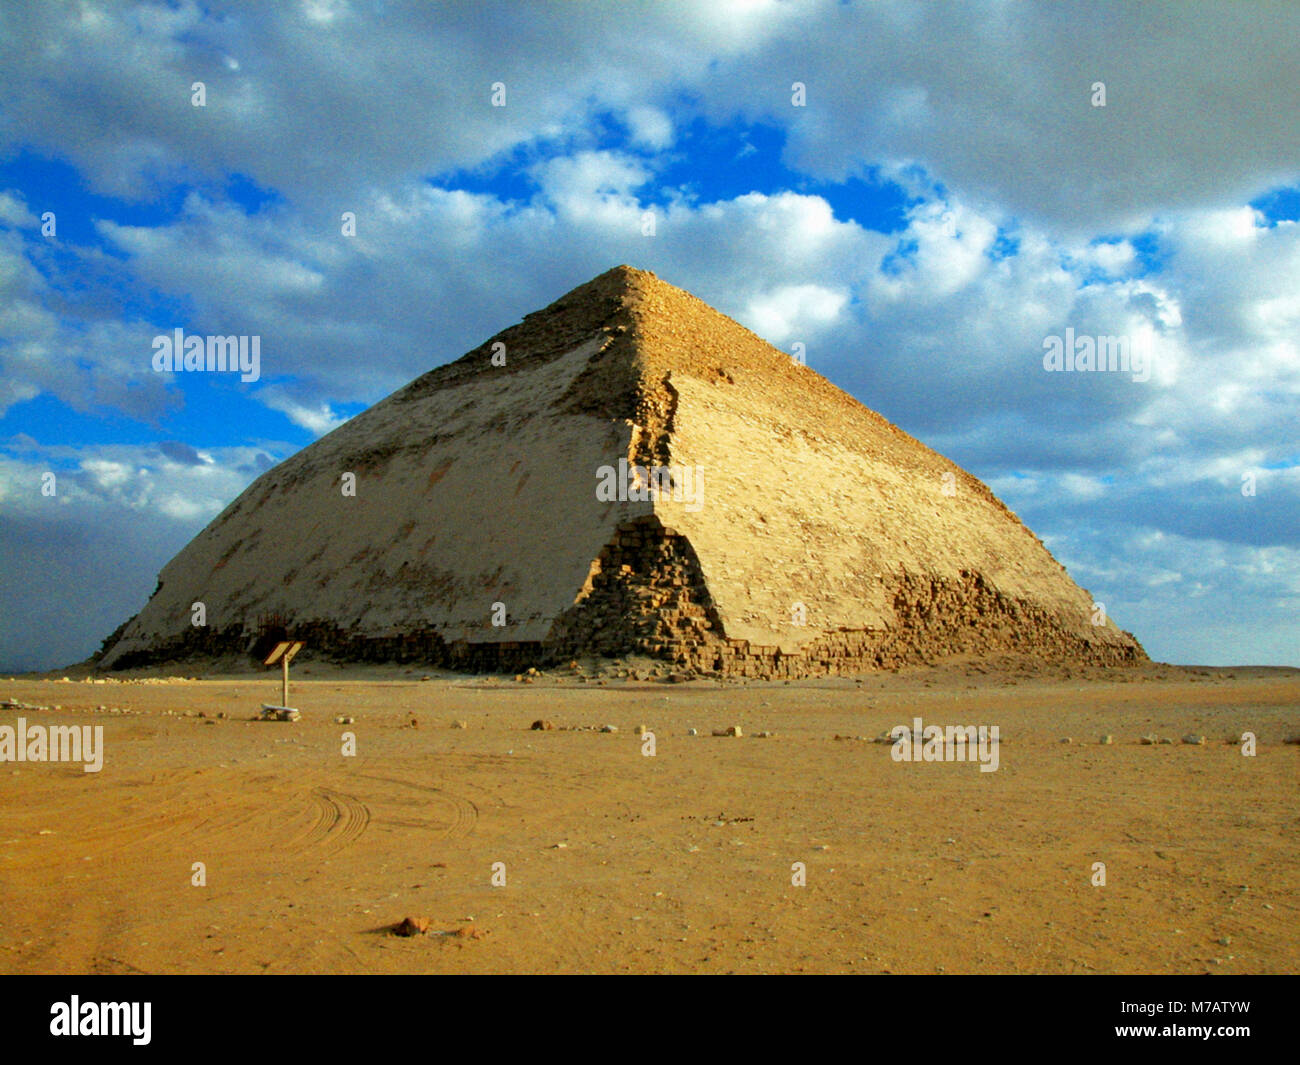 Pyramids in an arid landscape, Bent Pyramid, Dashur, Egypt - Stock Image